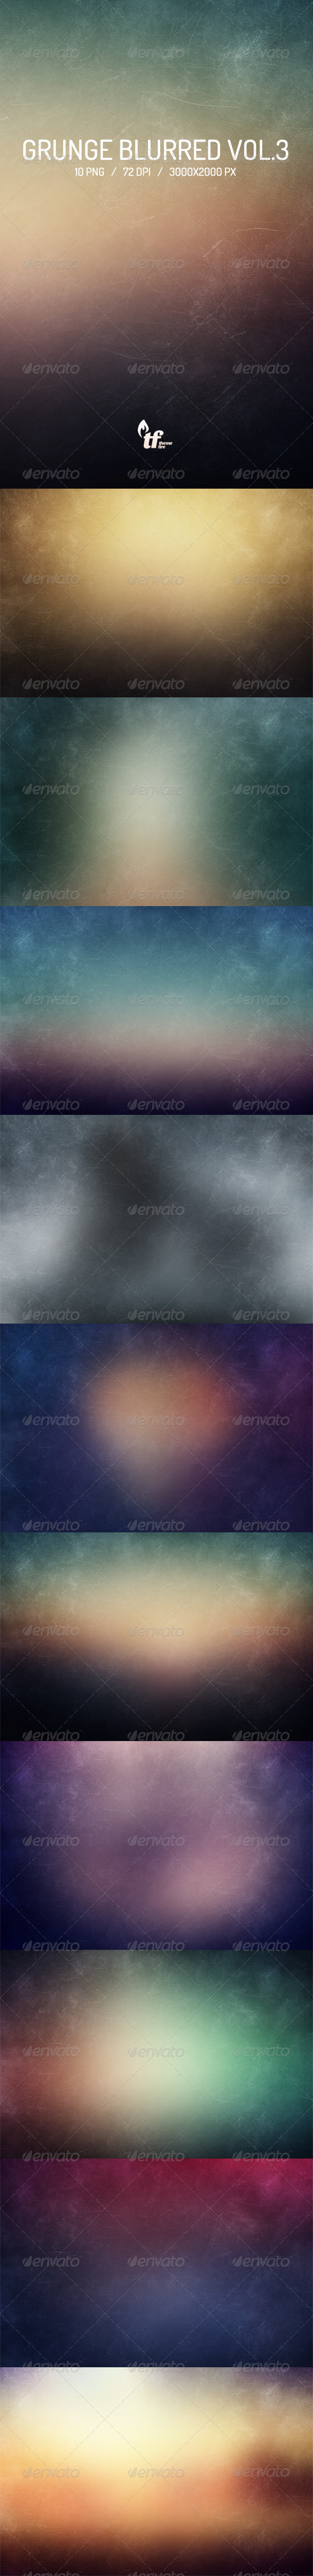 GraphicRiver Grunge Blurred Backgrounds Vol.3 7066594